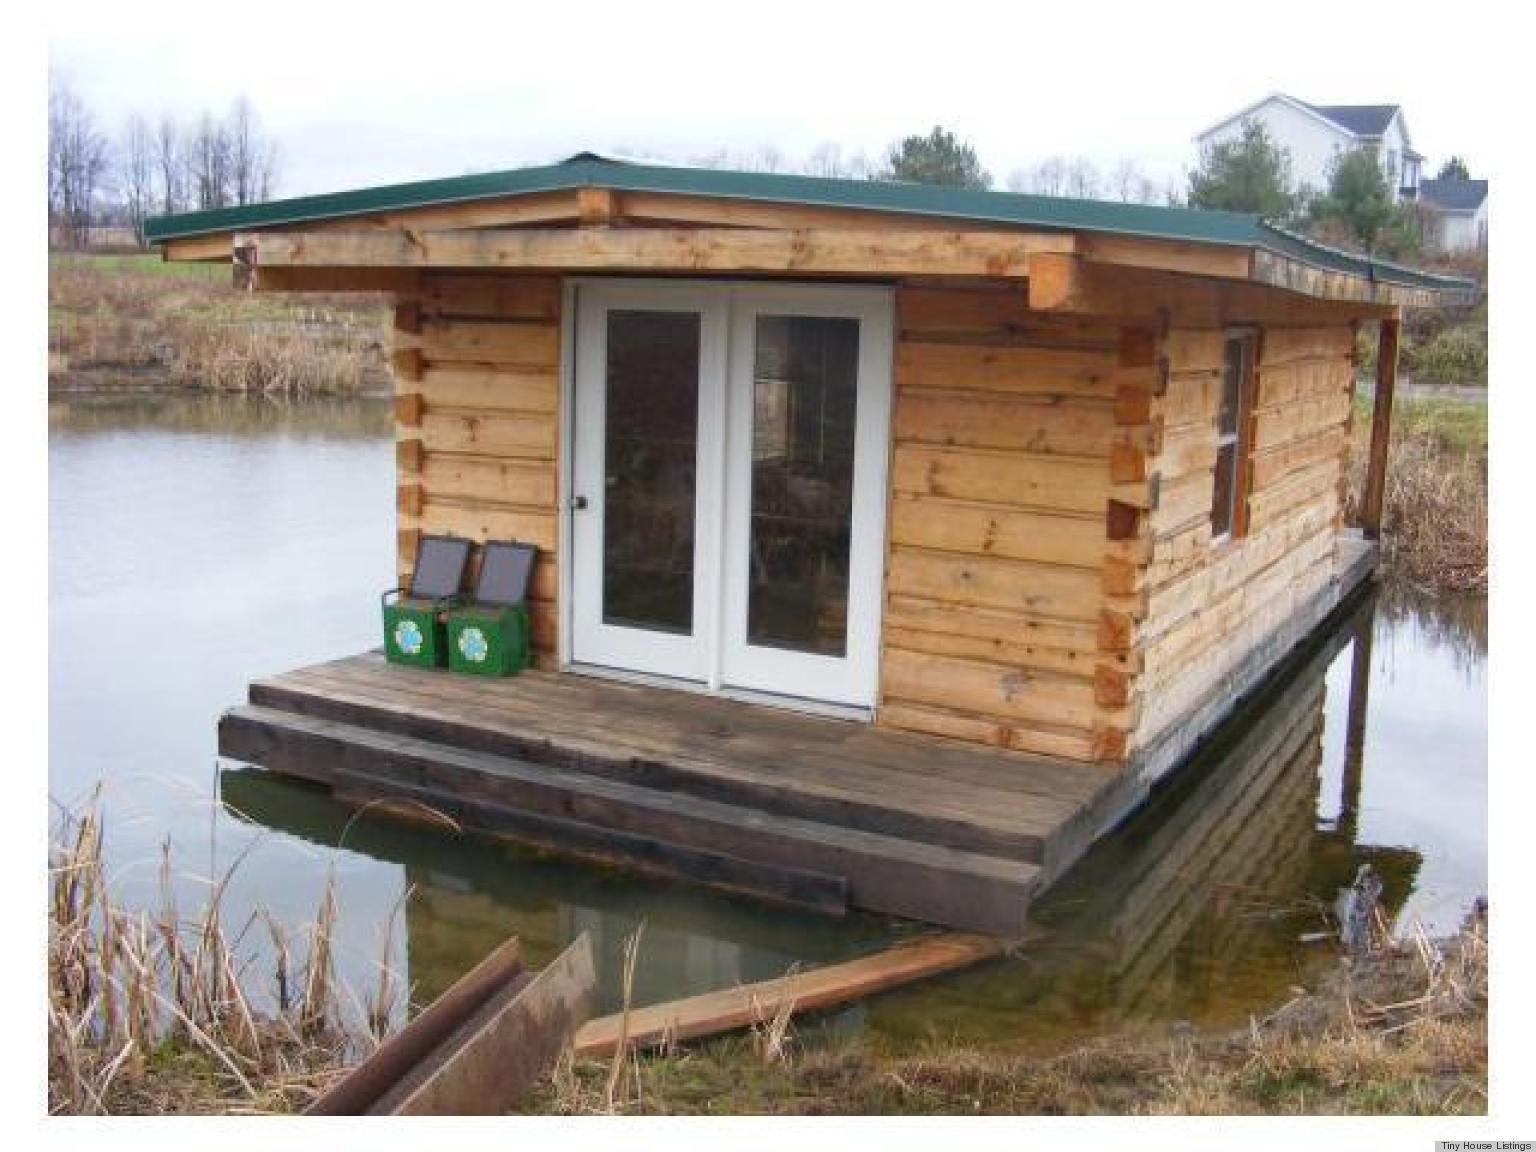 8 Surprising Facts About Floating Home Ownership - Coastal ...